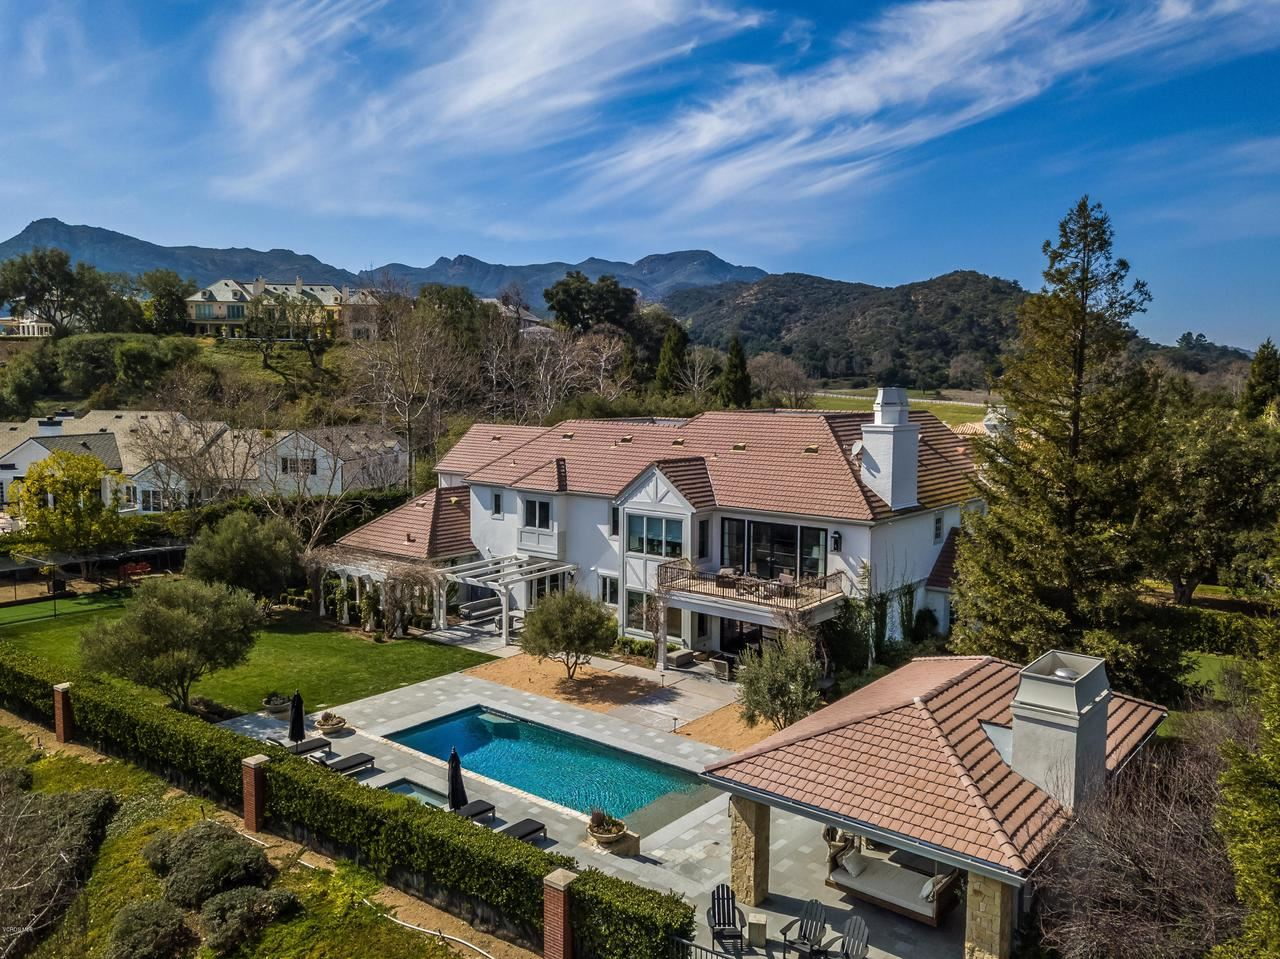 Photo of 2160 MARSHBROOK Road, Thousand Oaks, CA 91361 (MLS # 220002127)